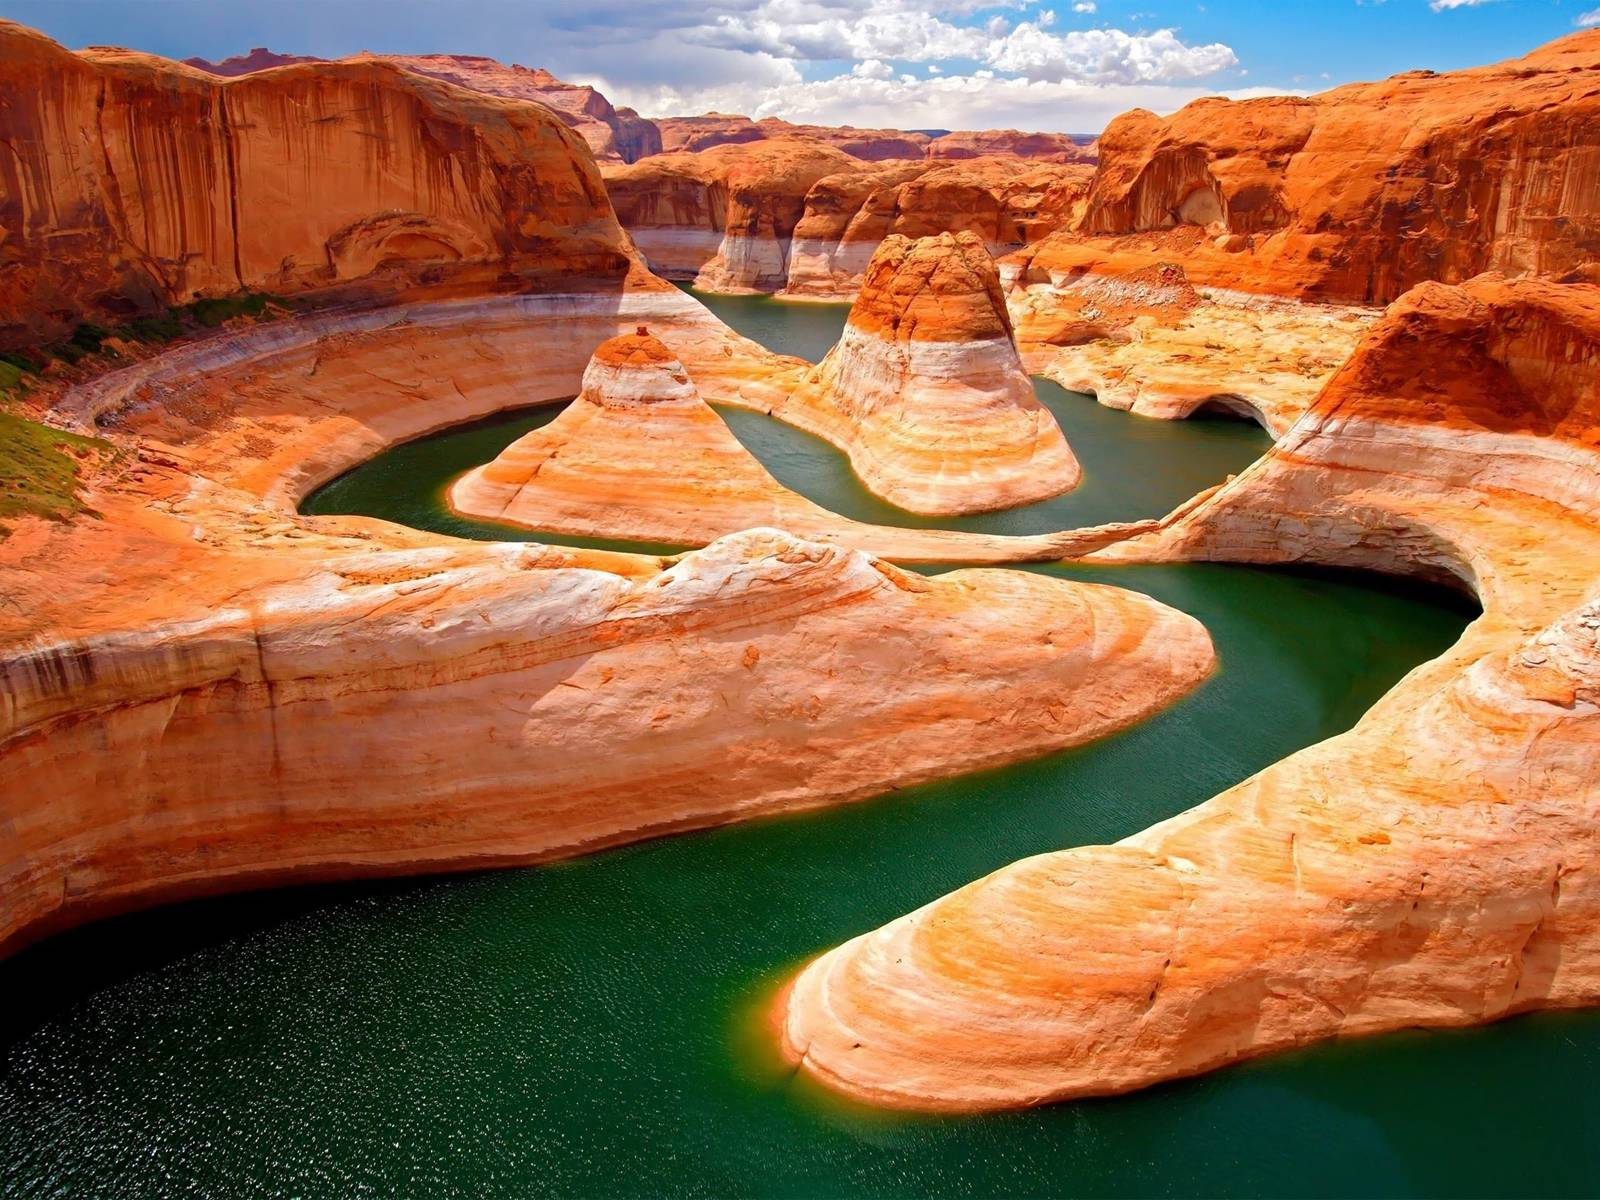 Colorado Plateau, Paria Canyon, Utah бесплатно